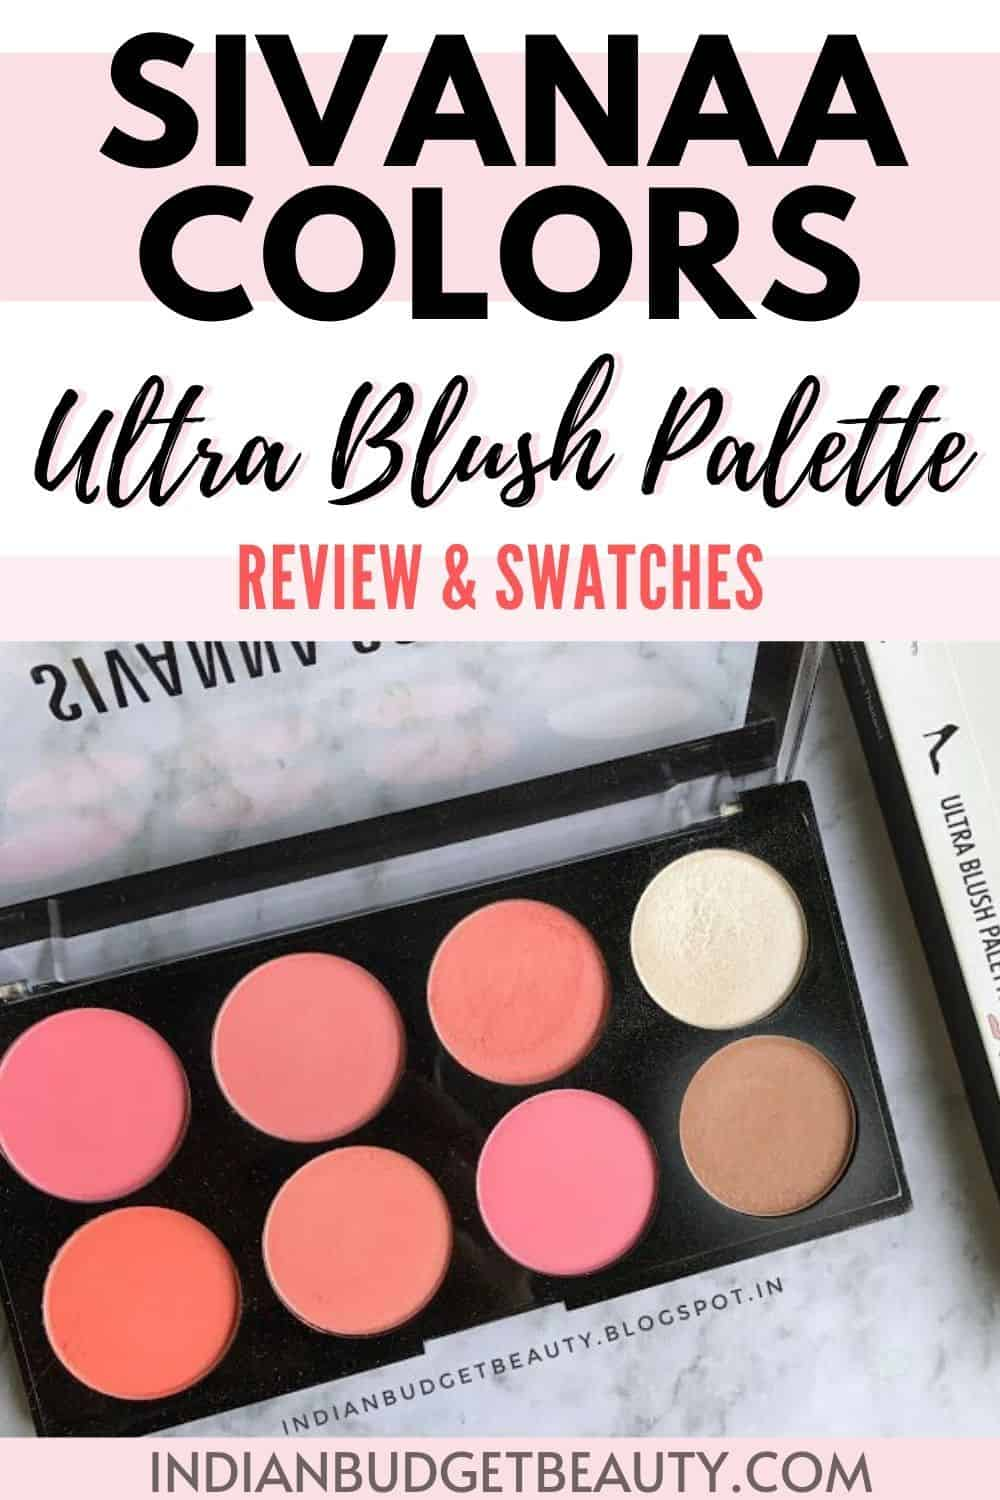 Sivanna Colors Ultra Blush Palette Review & Swatches